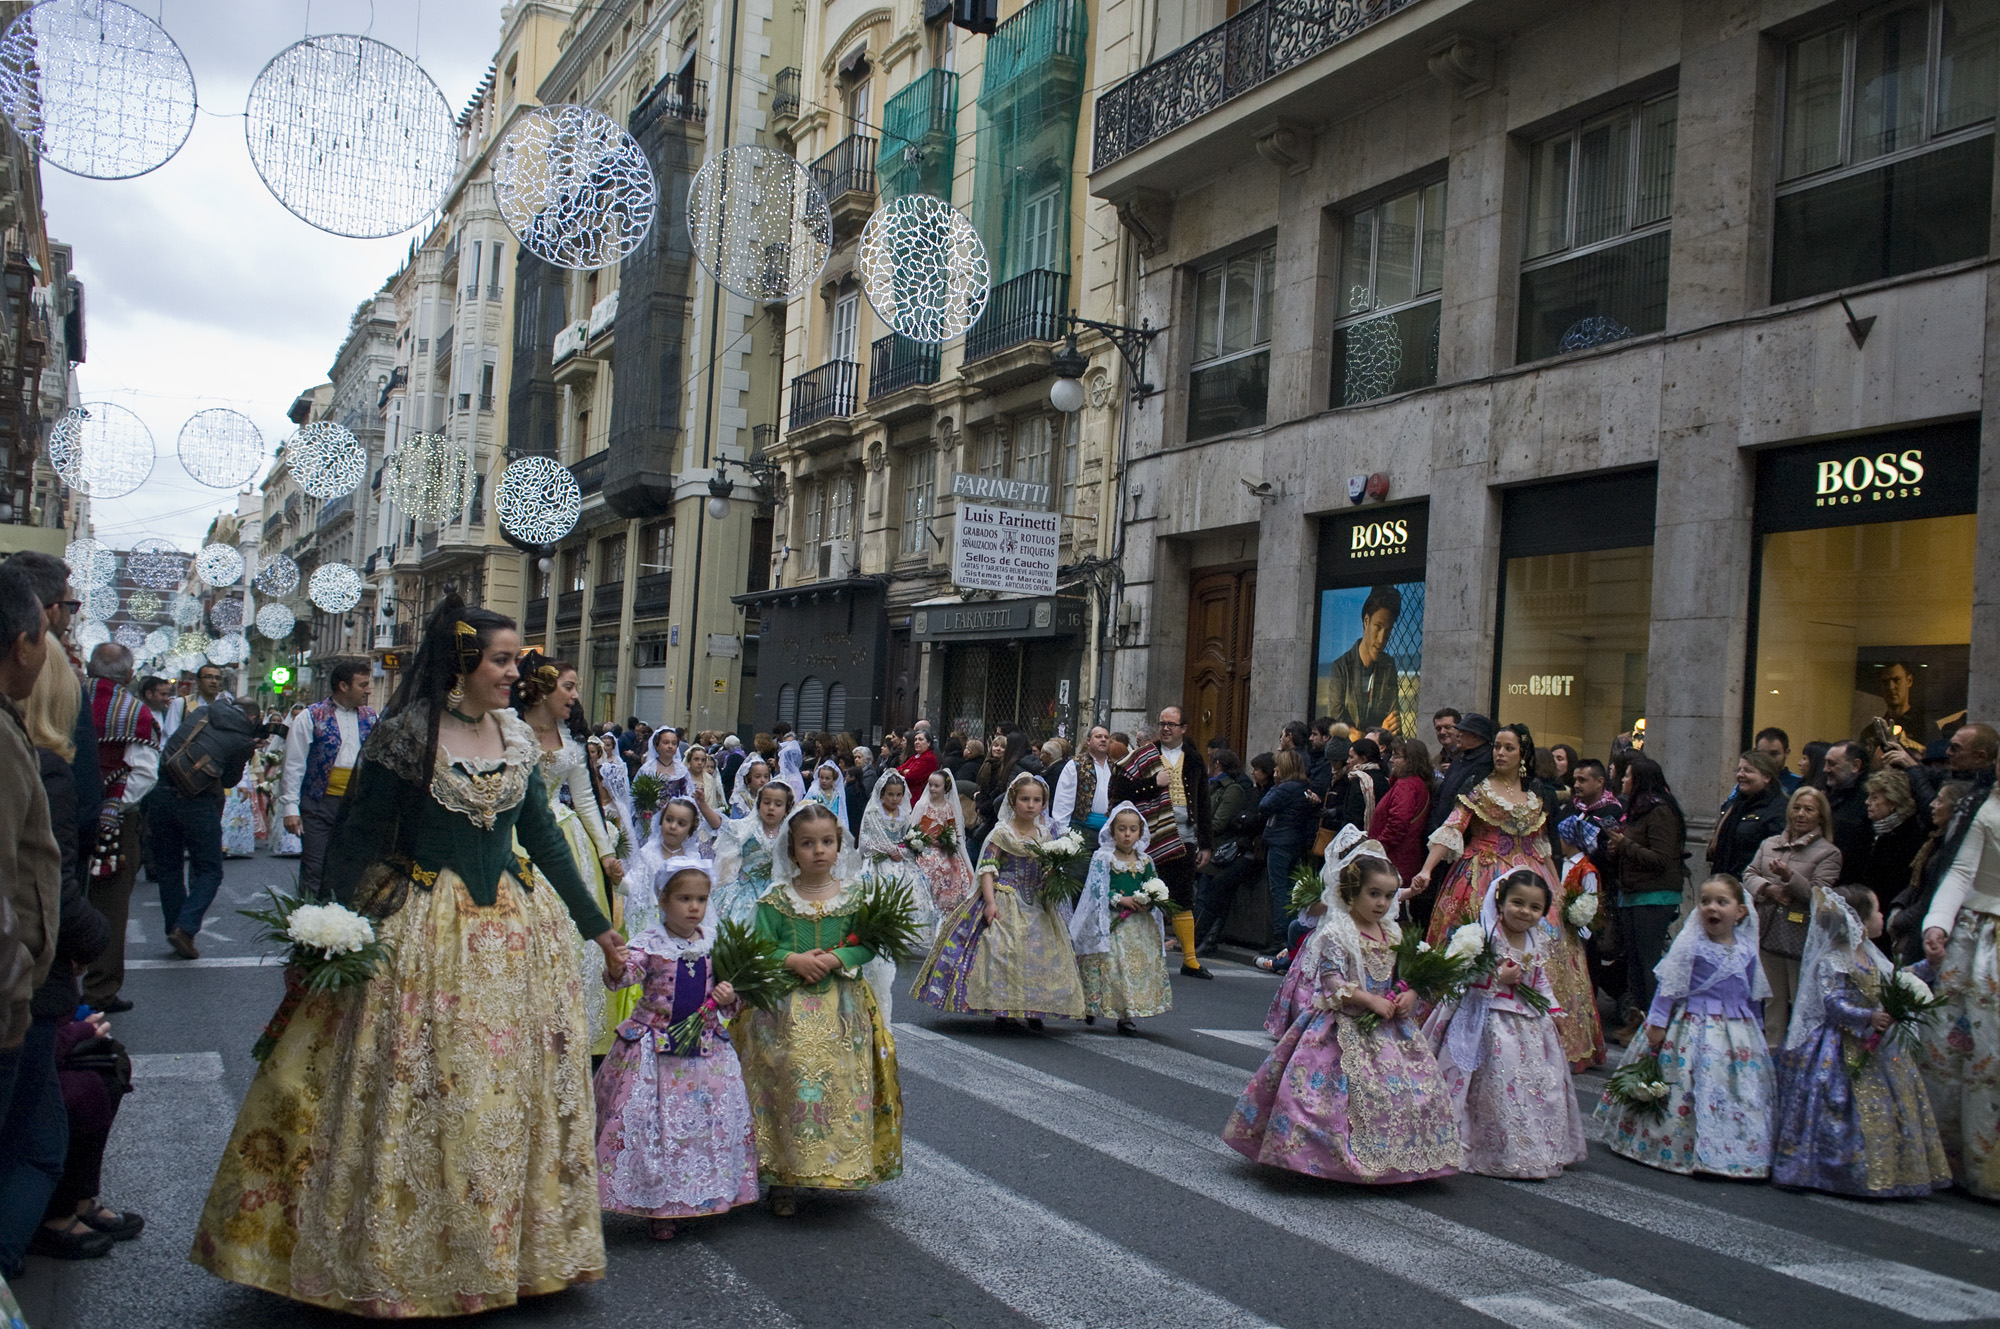 """The  Ofrenda - literally """"offering"""" in English- is the formal procession the falleras and falleros make to the the Plaza de la Virgen, bringing flowers that will make up herelaborate dress."""